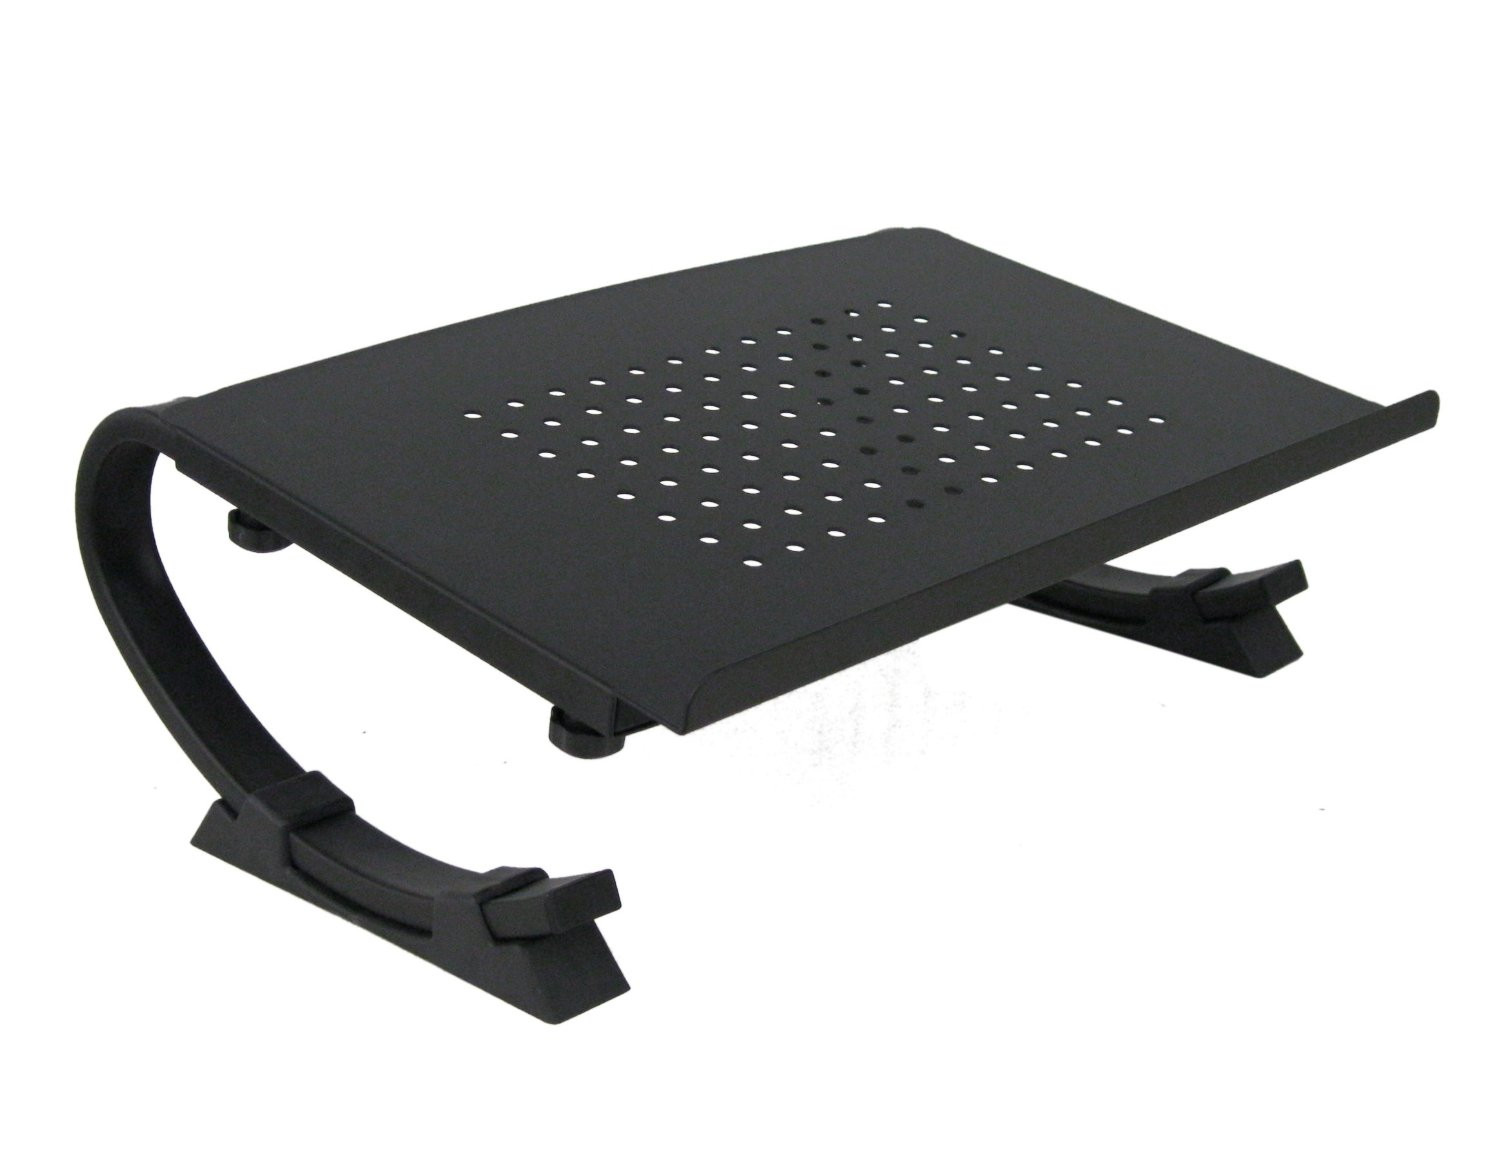 Wonderful laptop desk stand with aluminium feet with roll for work space or office furniture Ideas